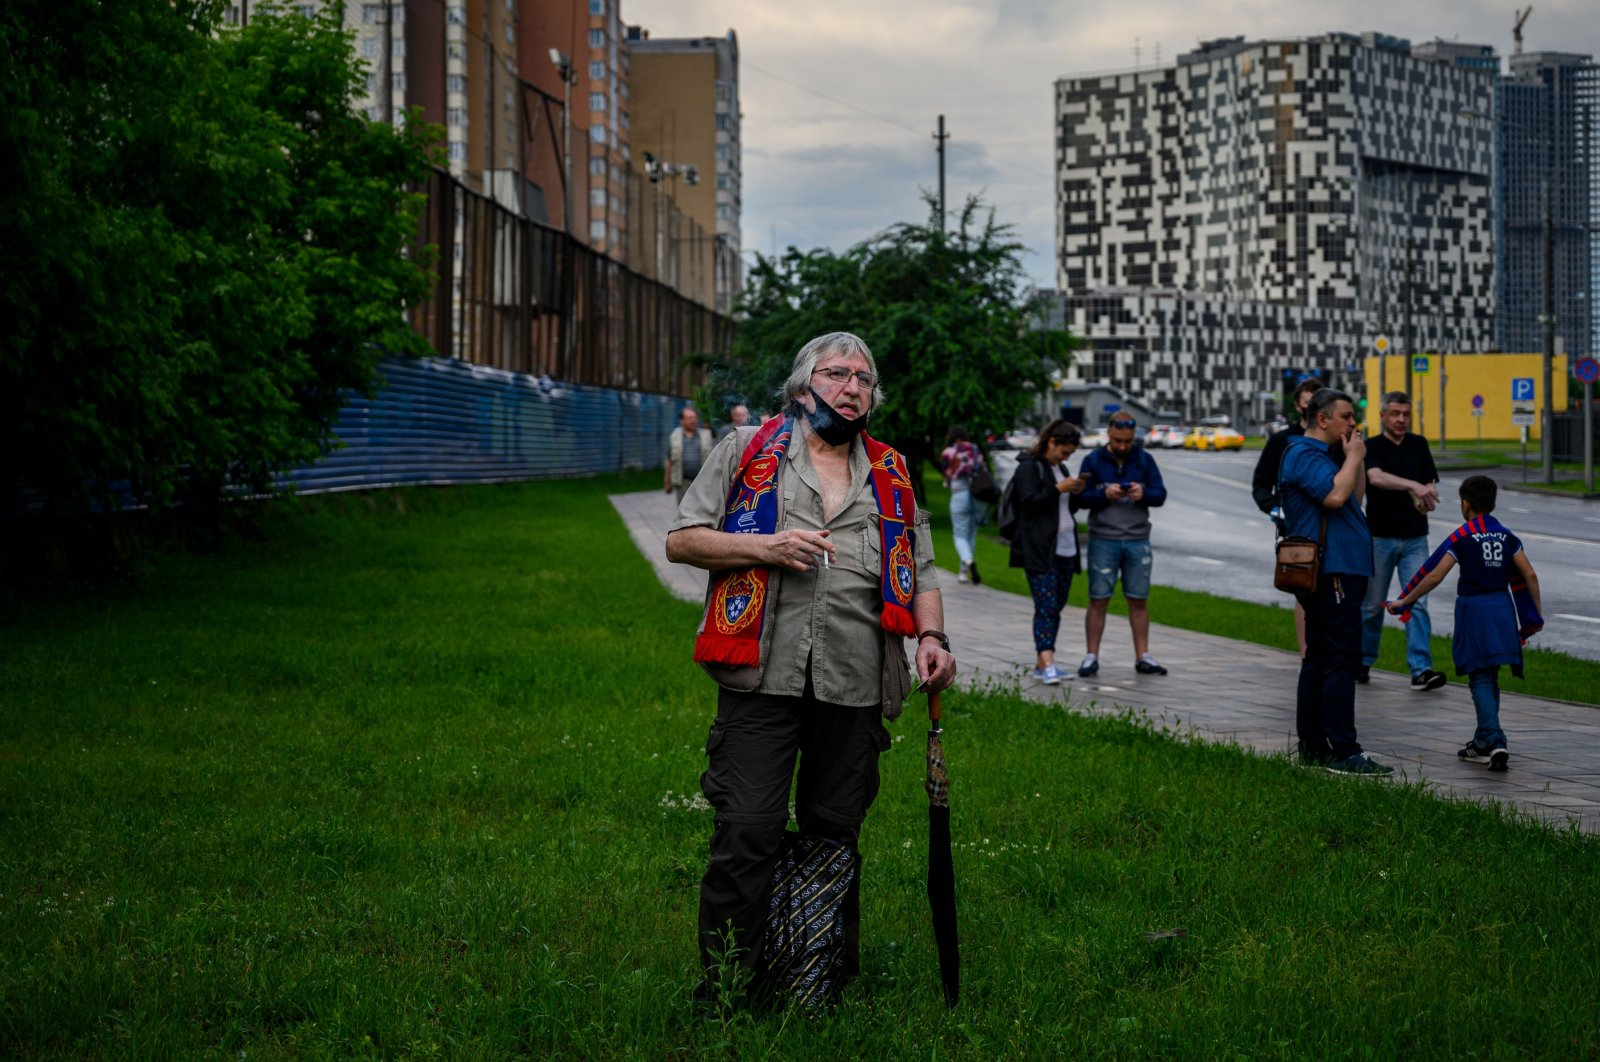 A CSKA Moscow fan smokes a cigarette before entering the VEB Arena to watch the Russian Premier League football match between CSKA Moscow and Zenit St. Petersburg in Moscow, Russia, June 20, 2020. (AFP Photo)